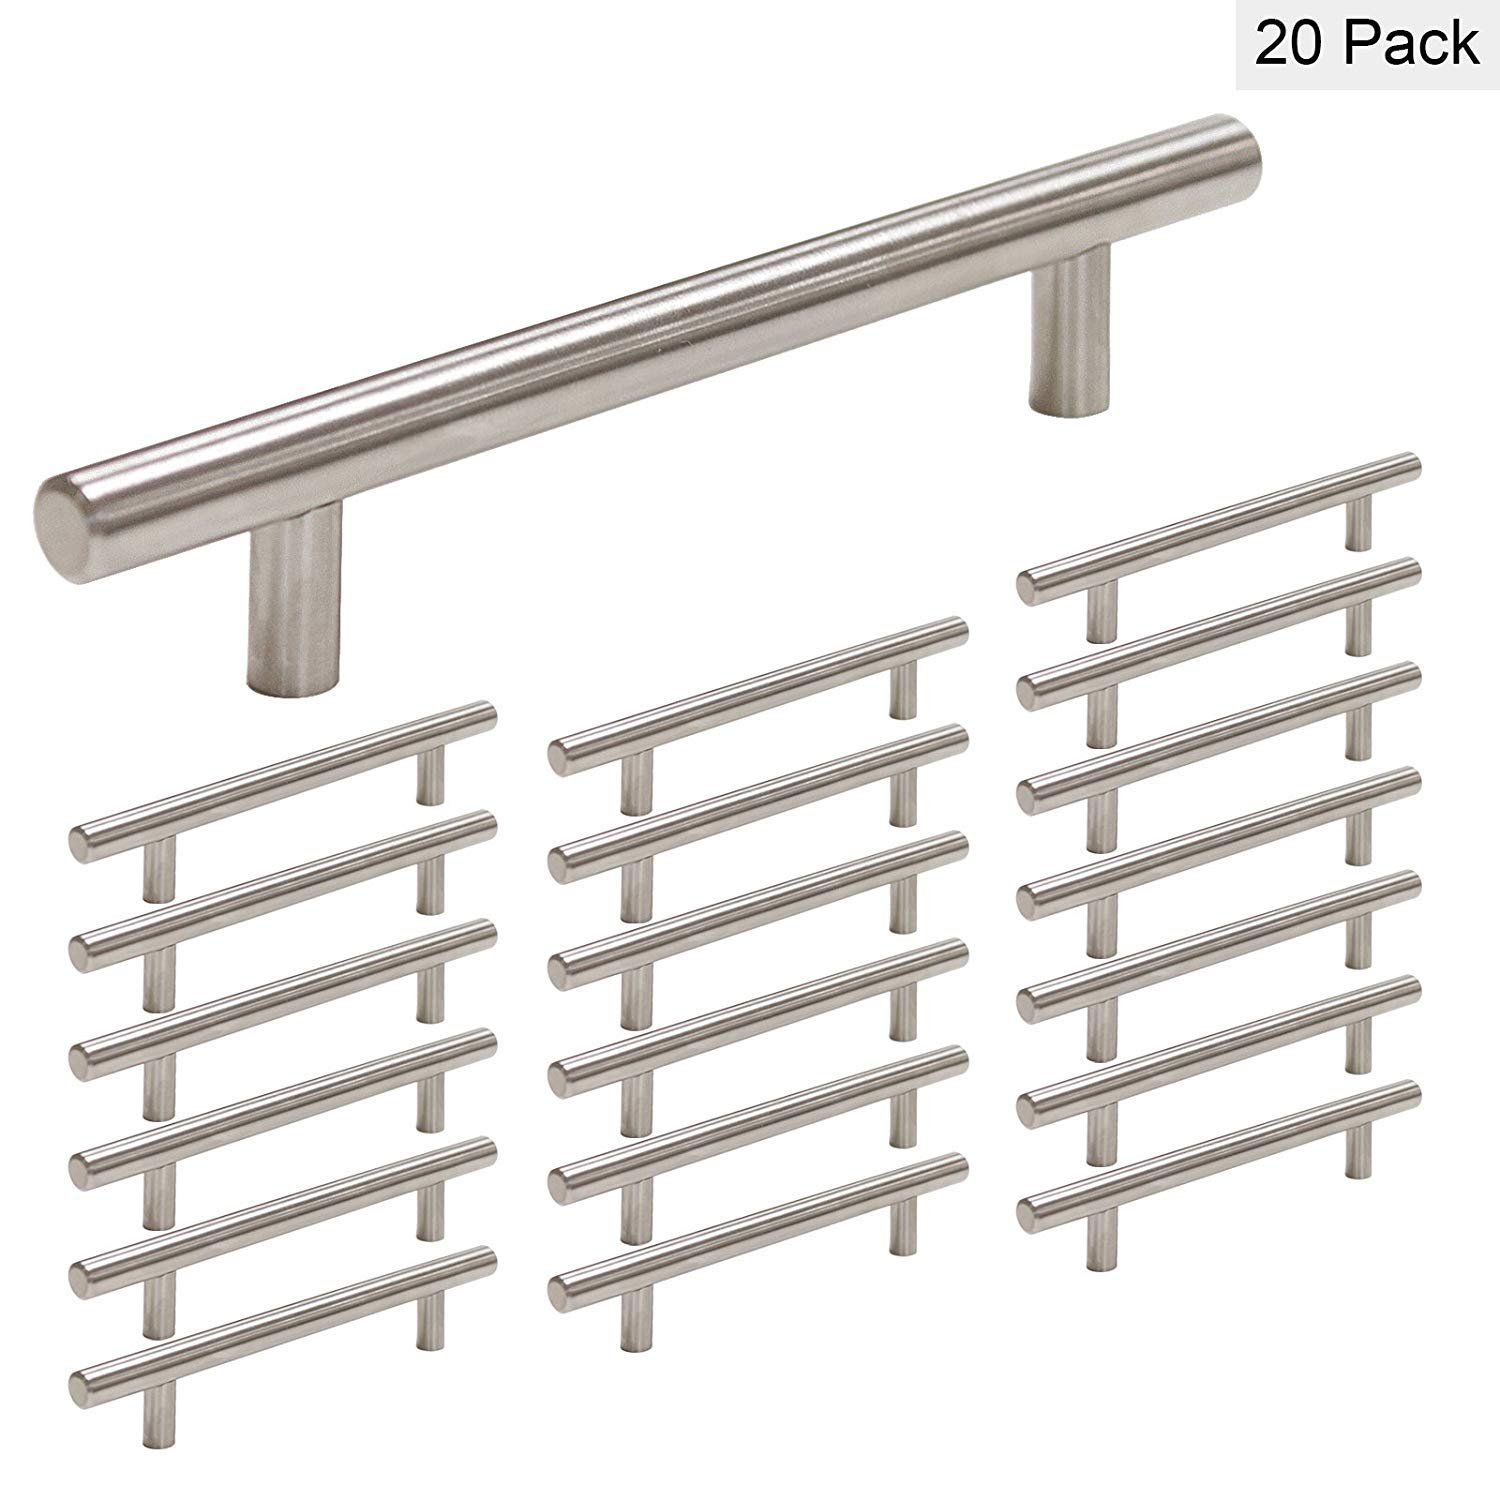 homdiy Brushed Nickel Cabinet Pulls 20 Pack 4in Hole Center Kitchen Cabinet Handles Brushed Nickel Drawer Pulls - HD201SN Modern Cabinet Hardware Pull Brushed Nickel Handles for Bathroom, Closet